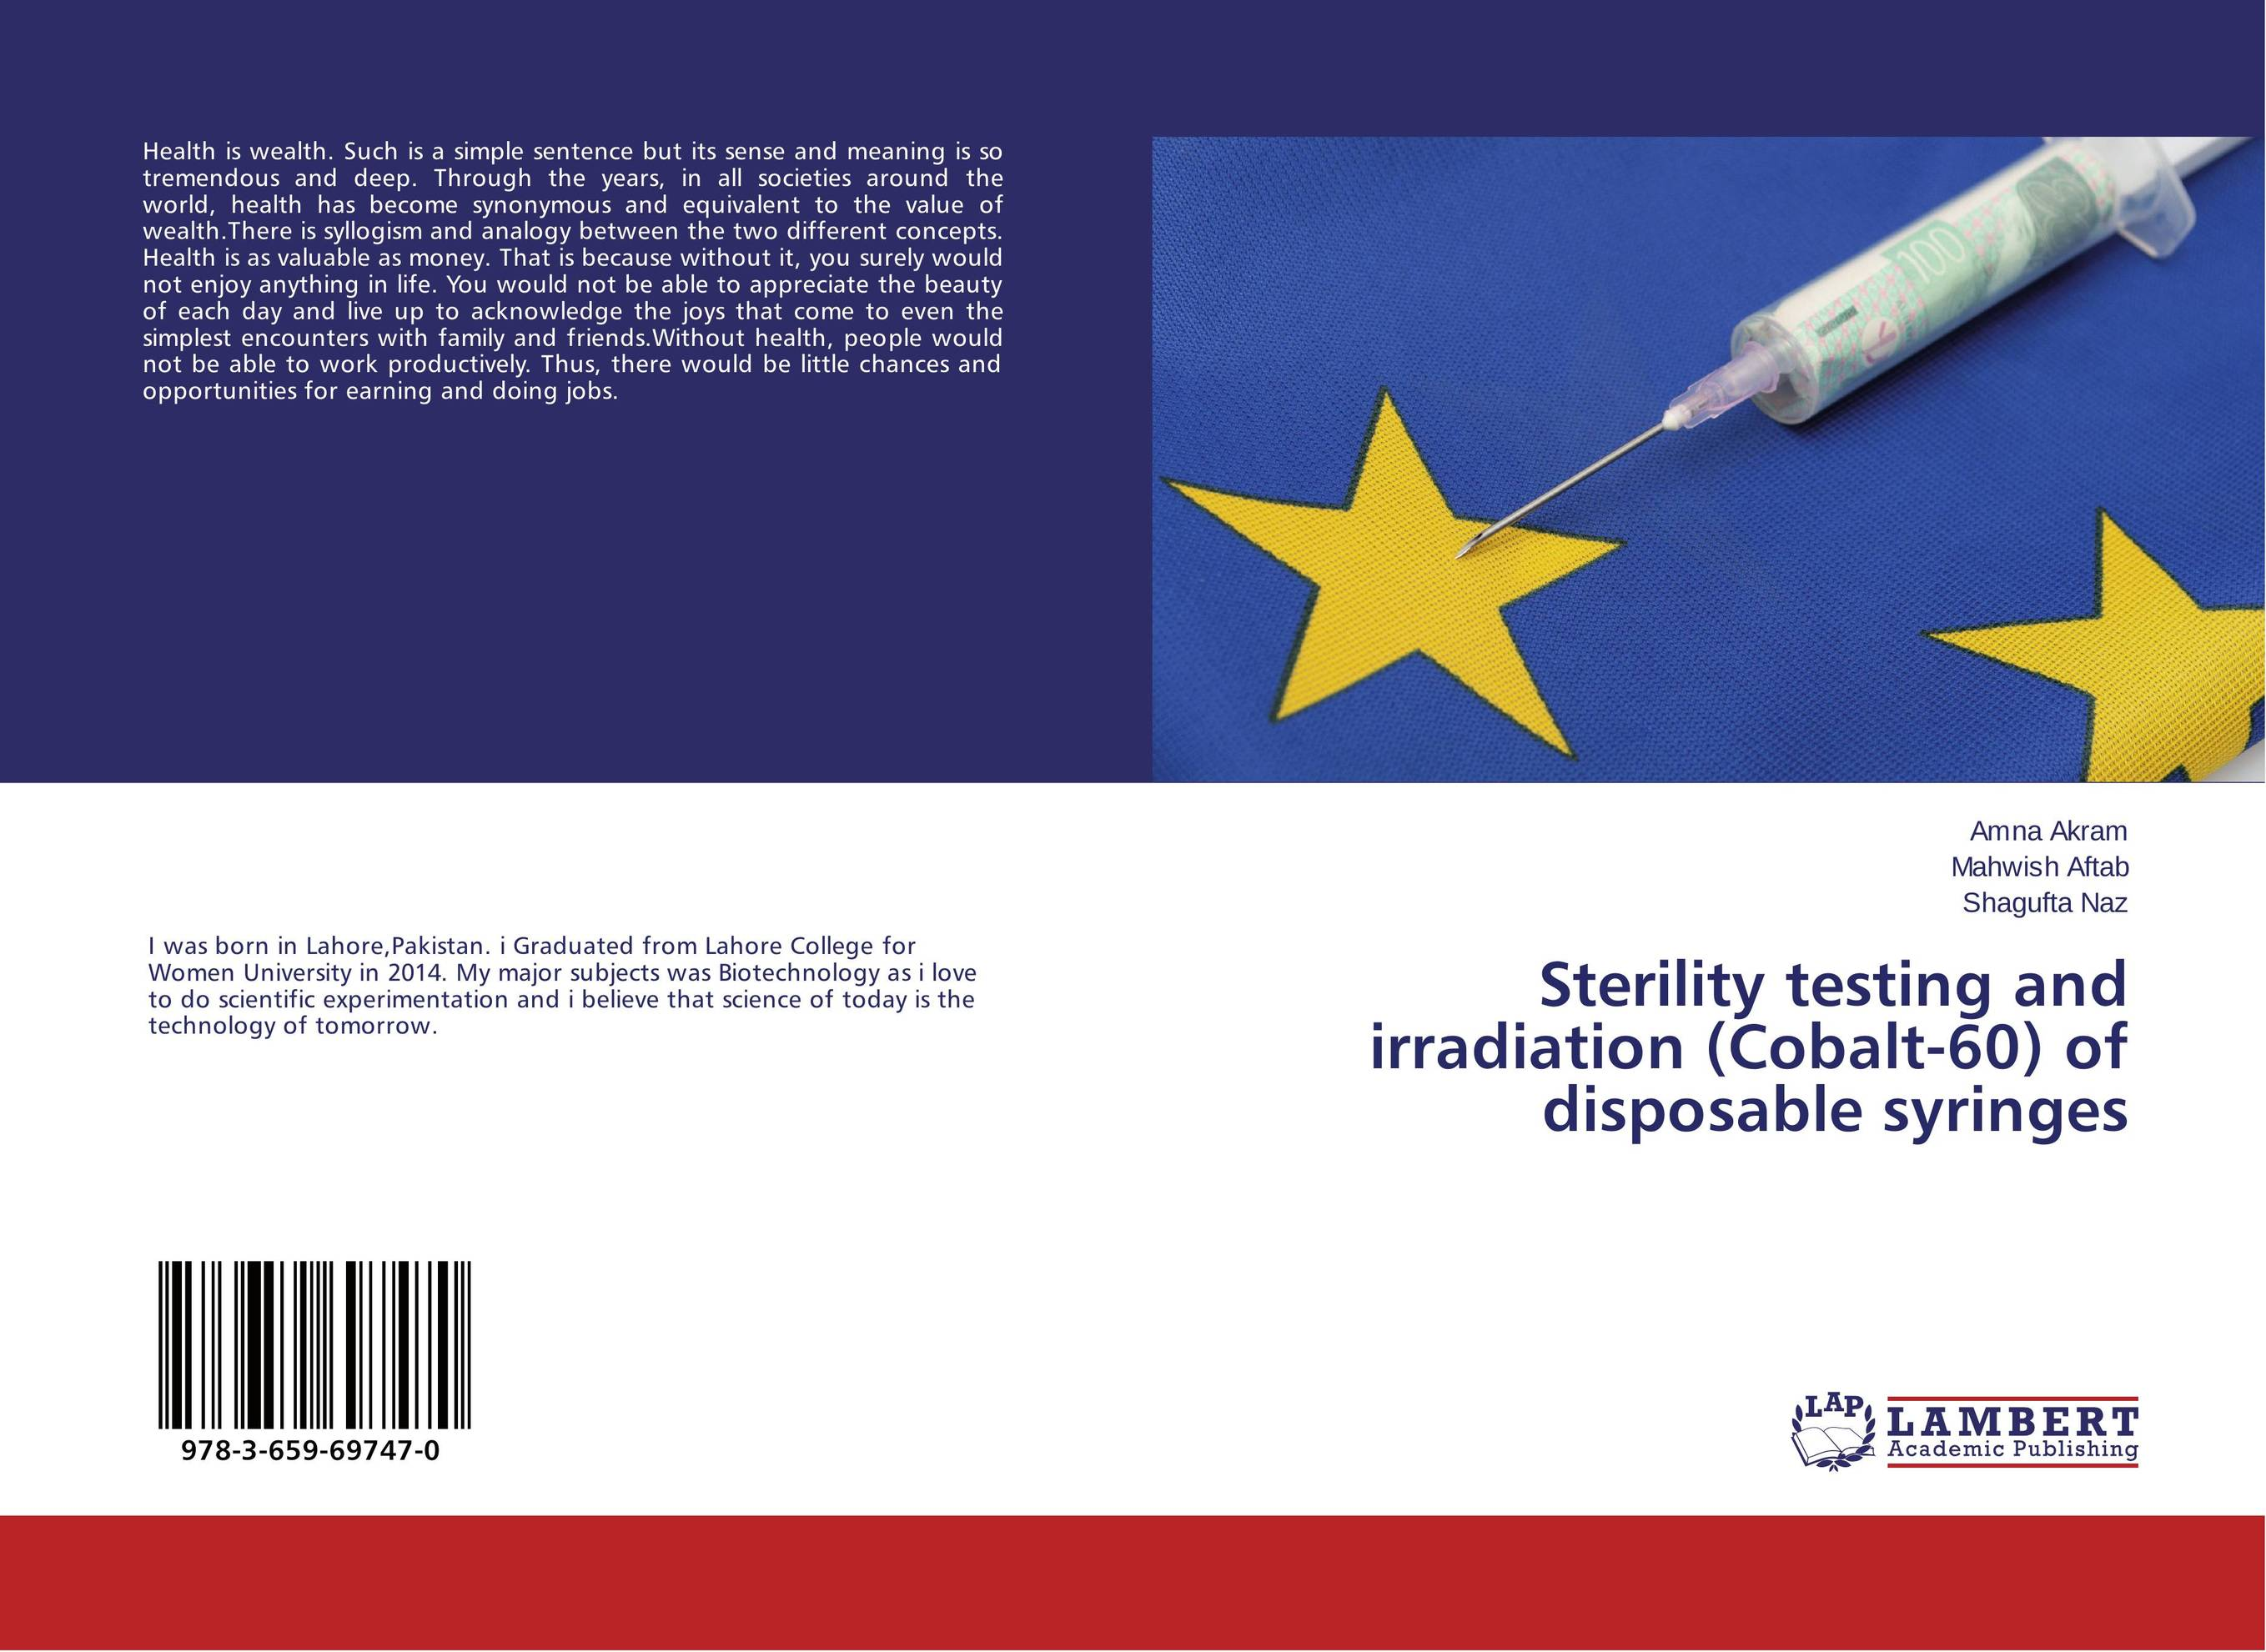 Sterility testing and irradiation (Cobalt-60) of disposable syringes sense and sensibility